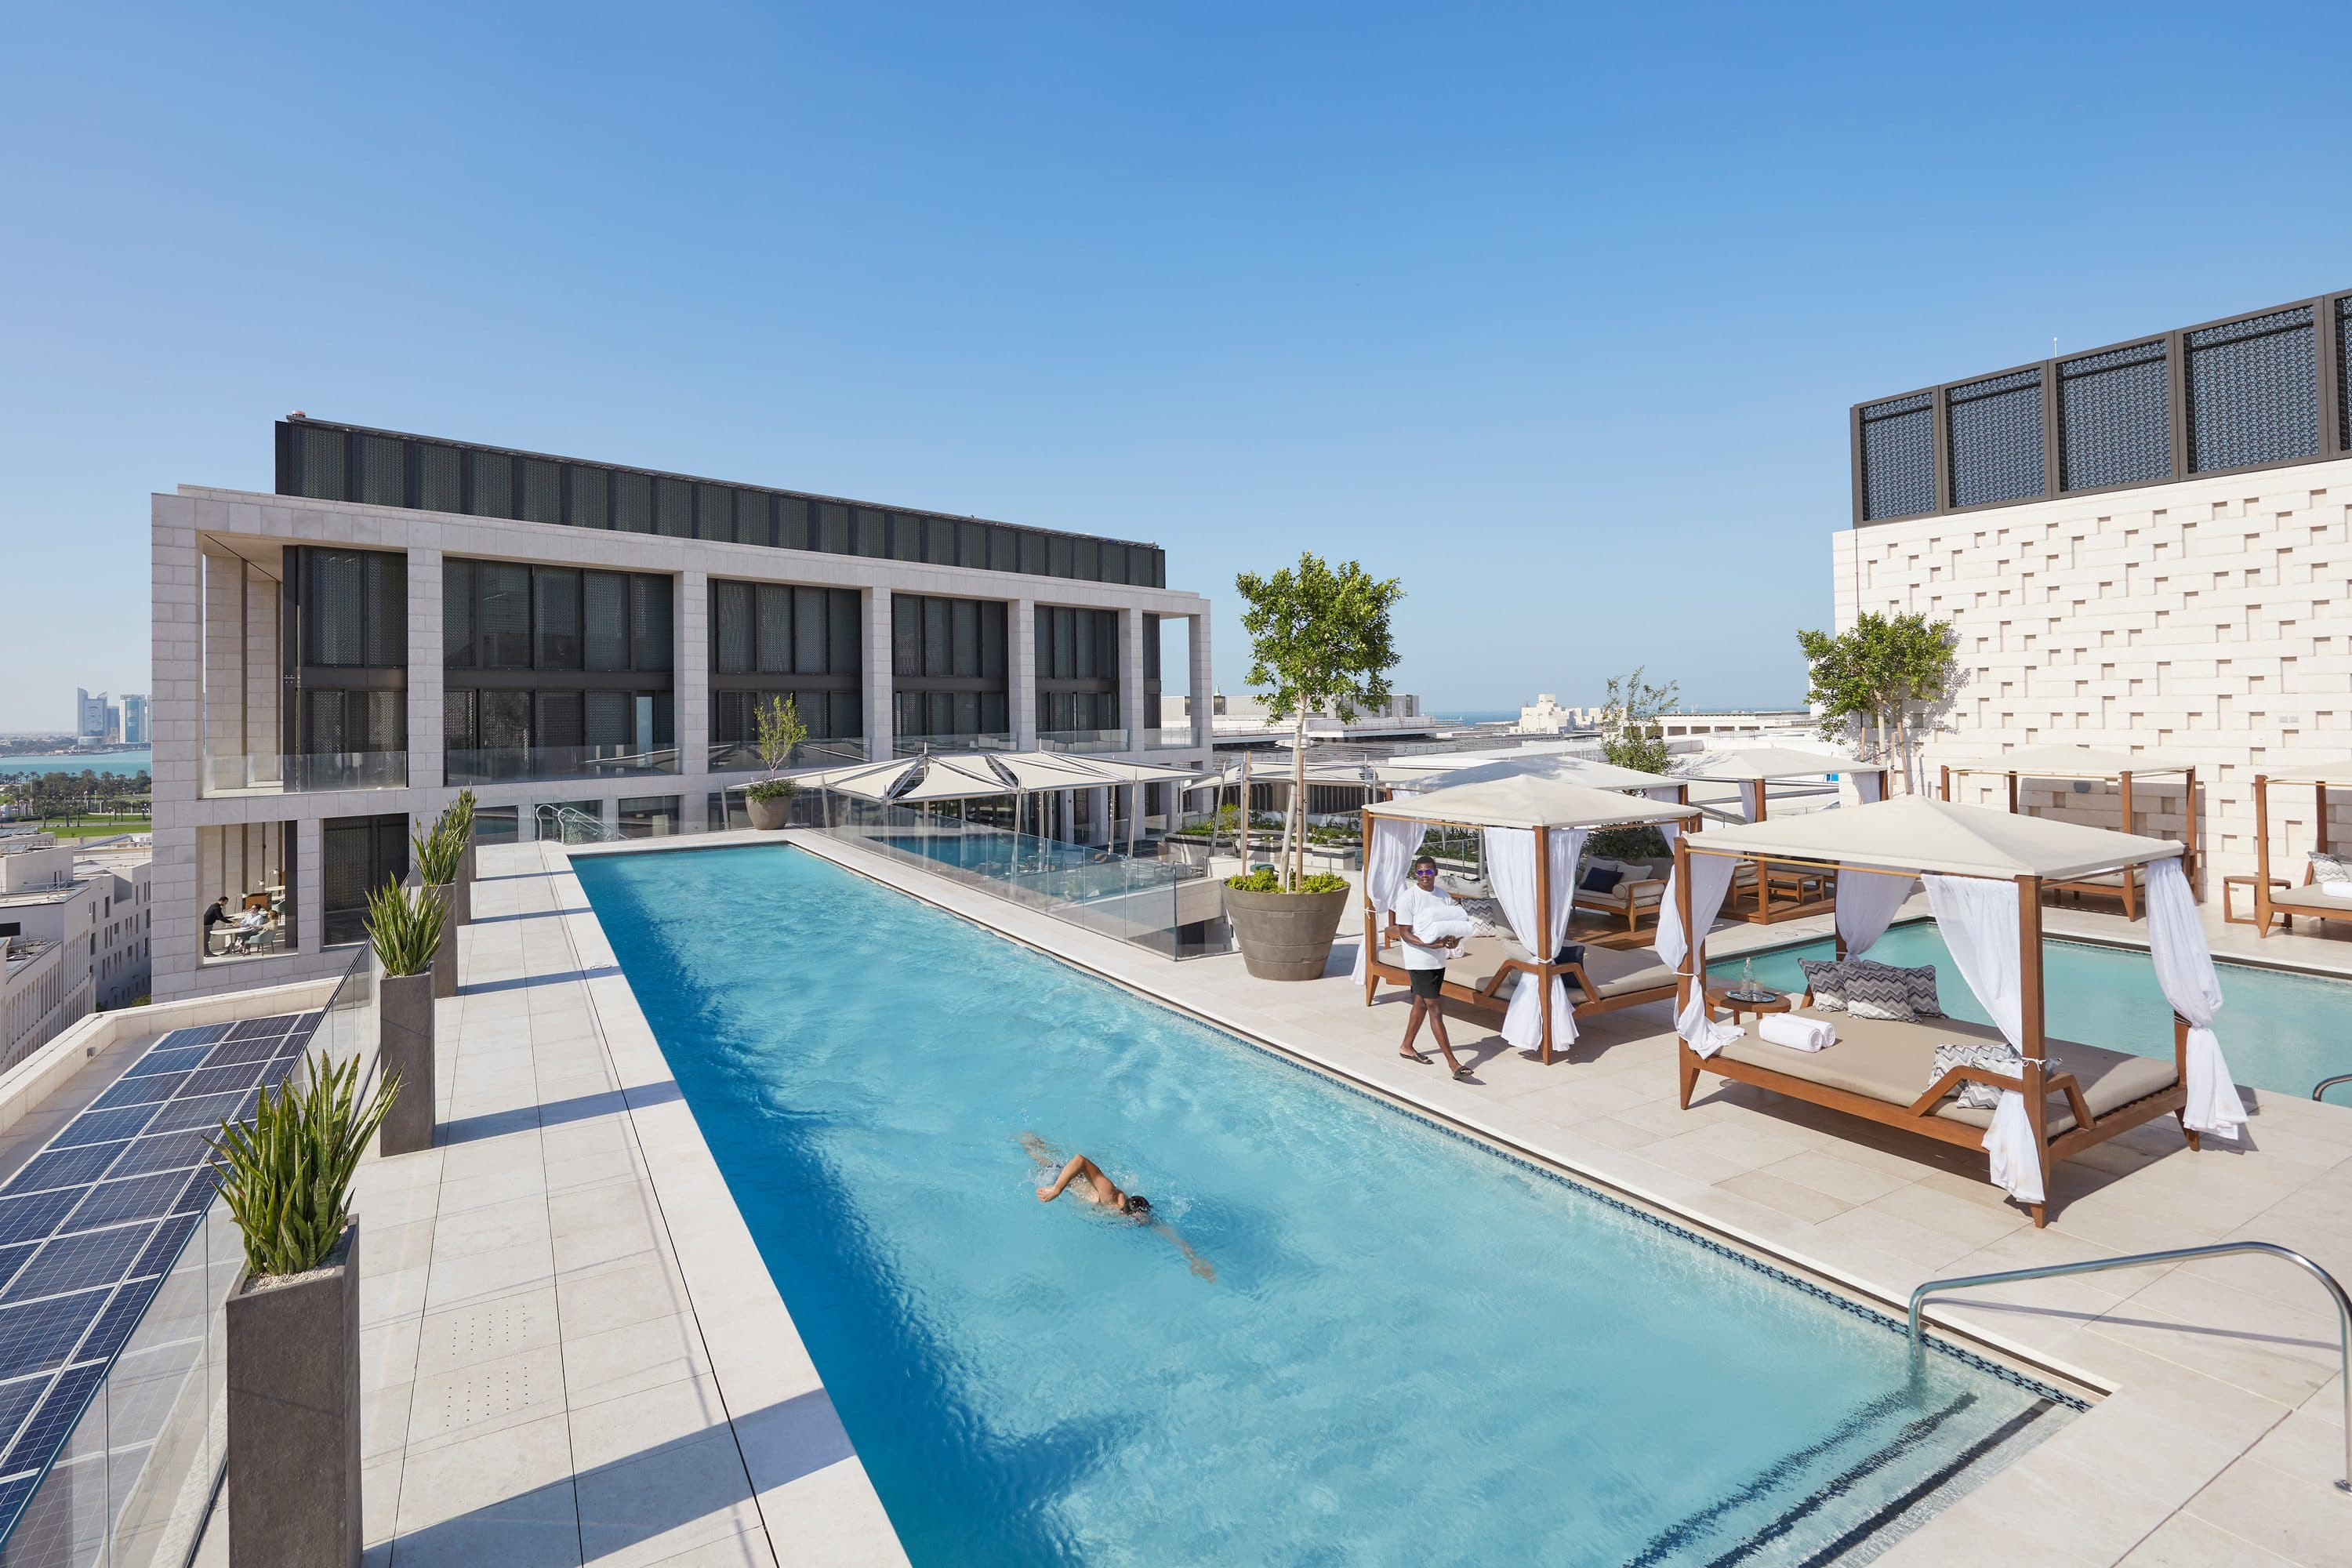 The rooftop pool at Mandarin Oriental, Doha